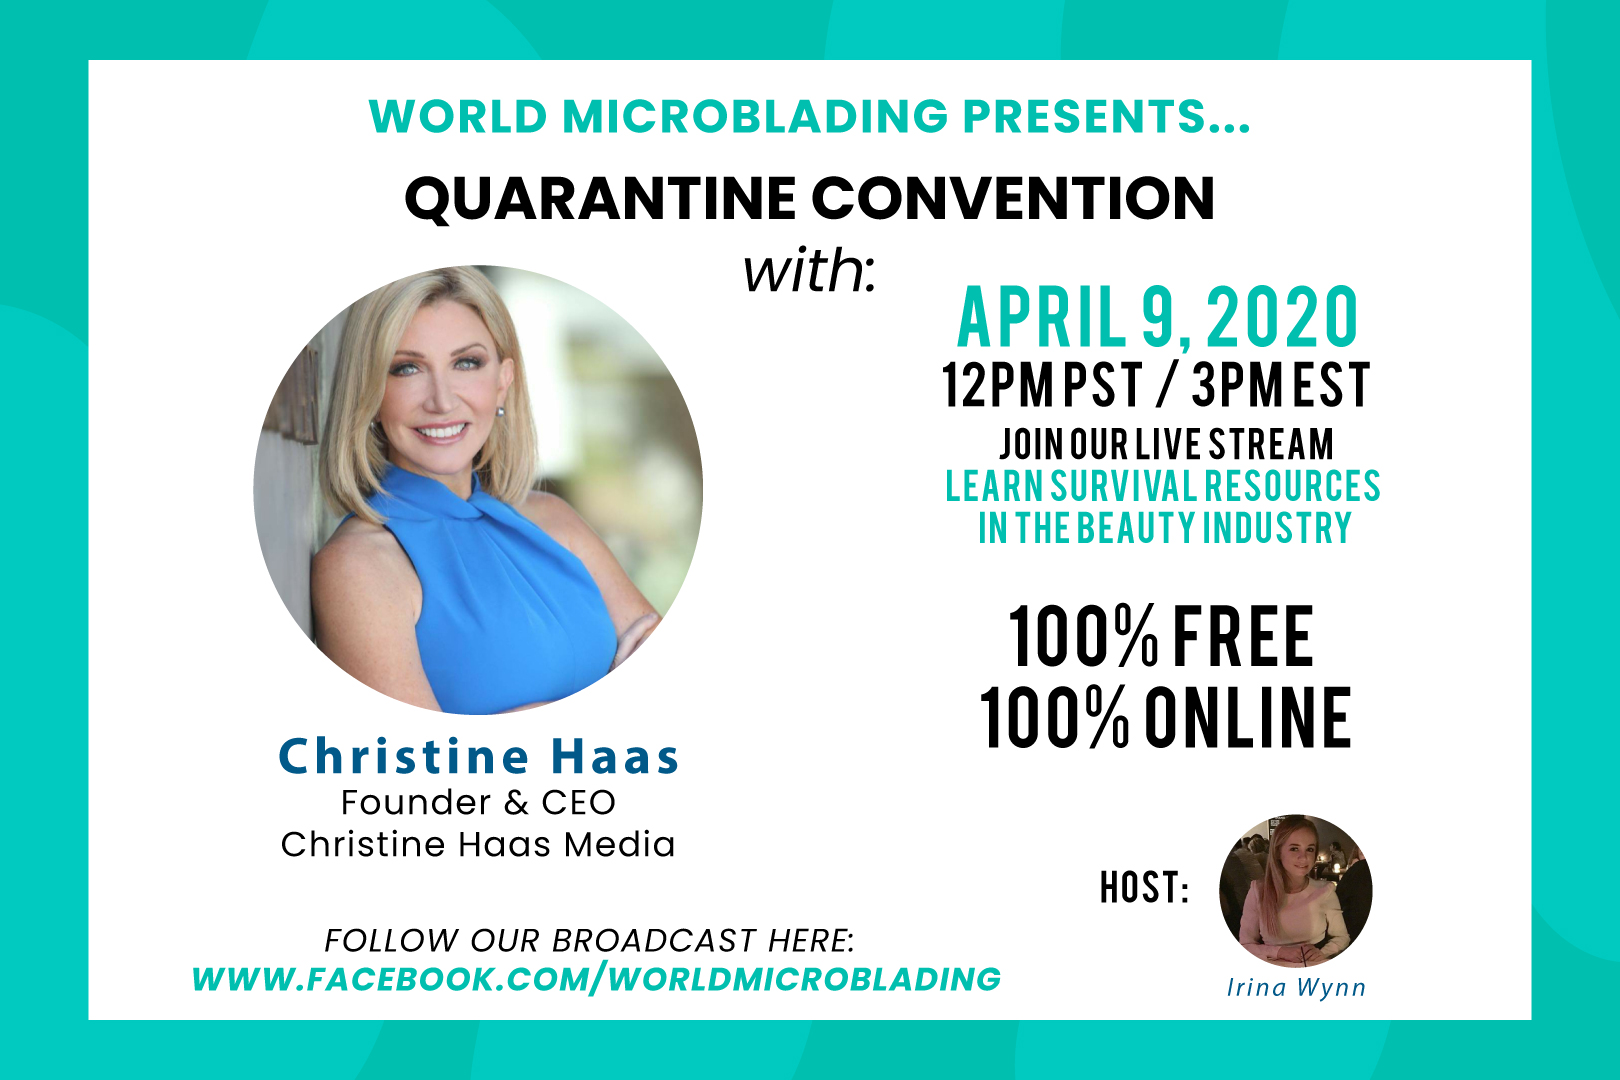 Christine Haas: LIVE at the Quarantine Convention for the Beauty Industry